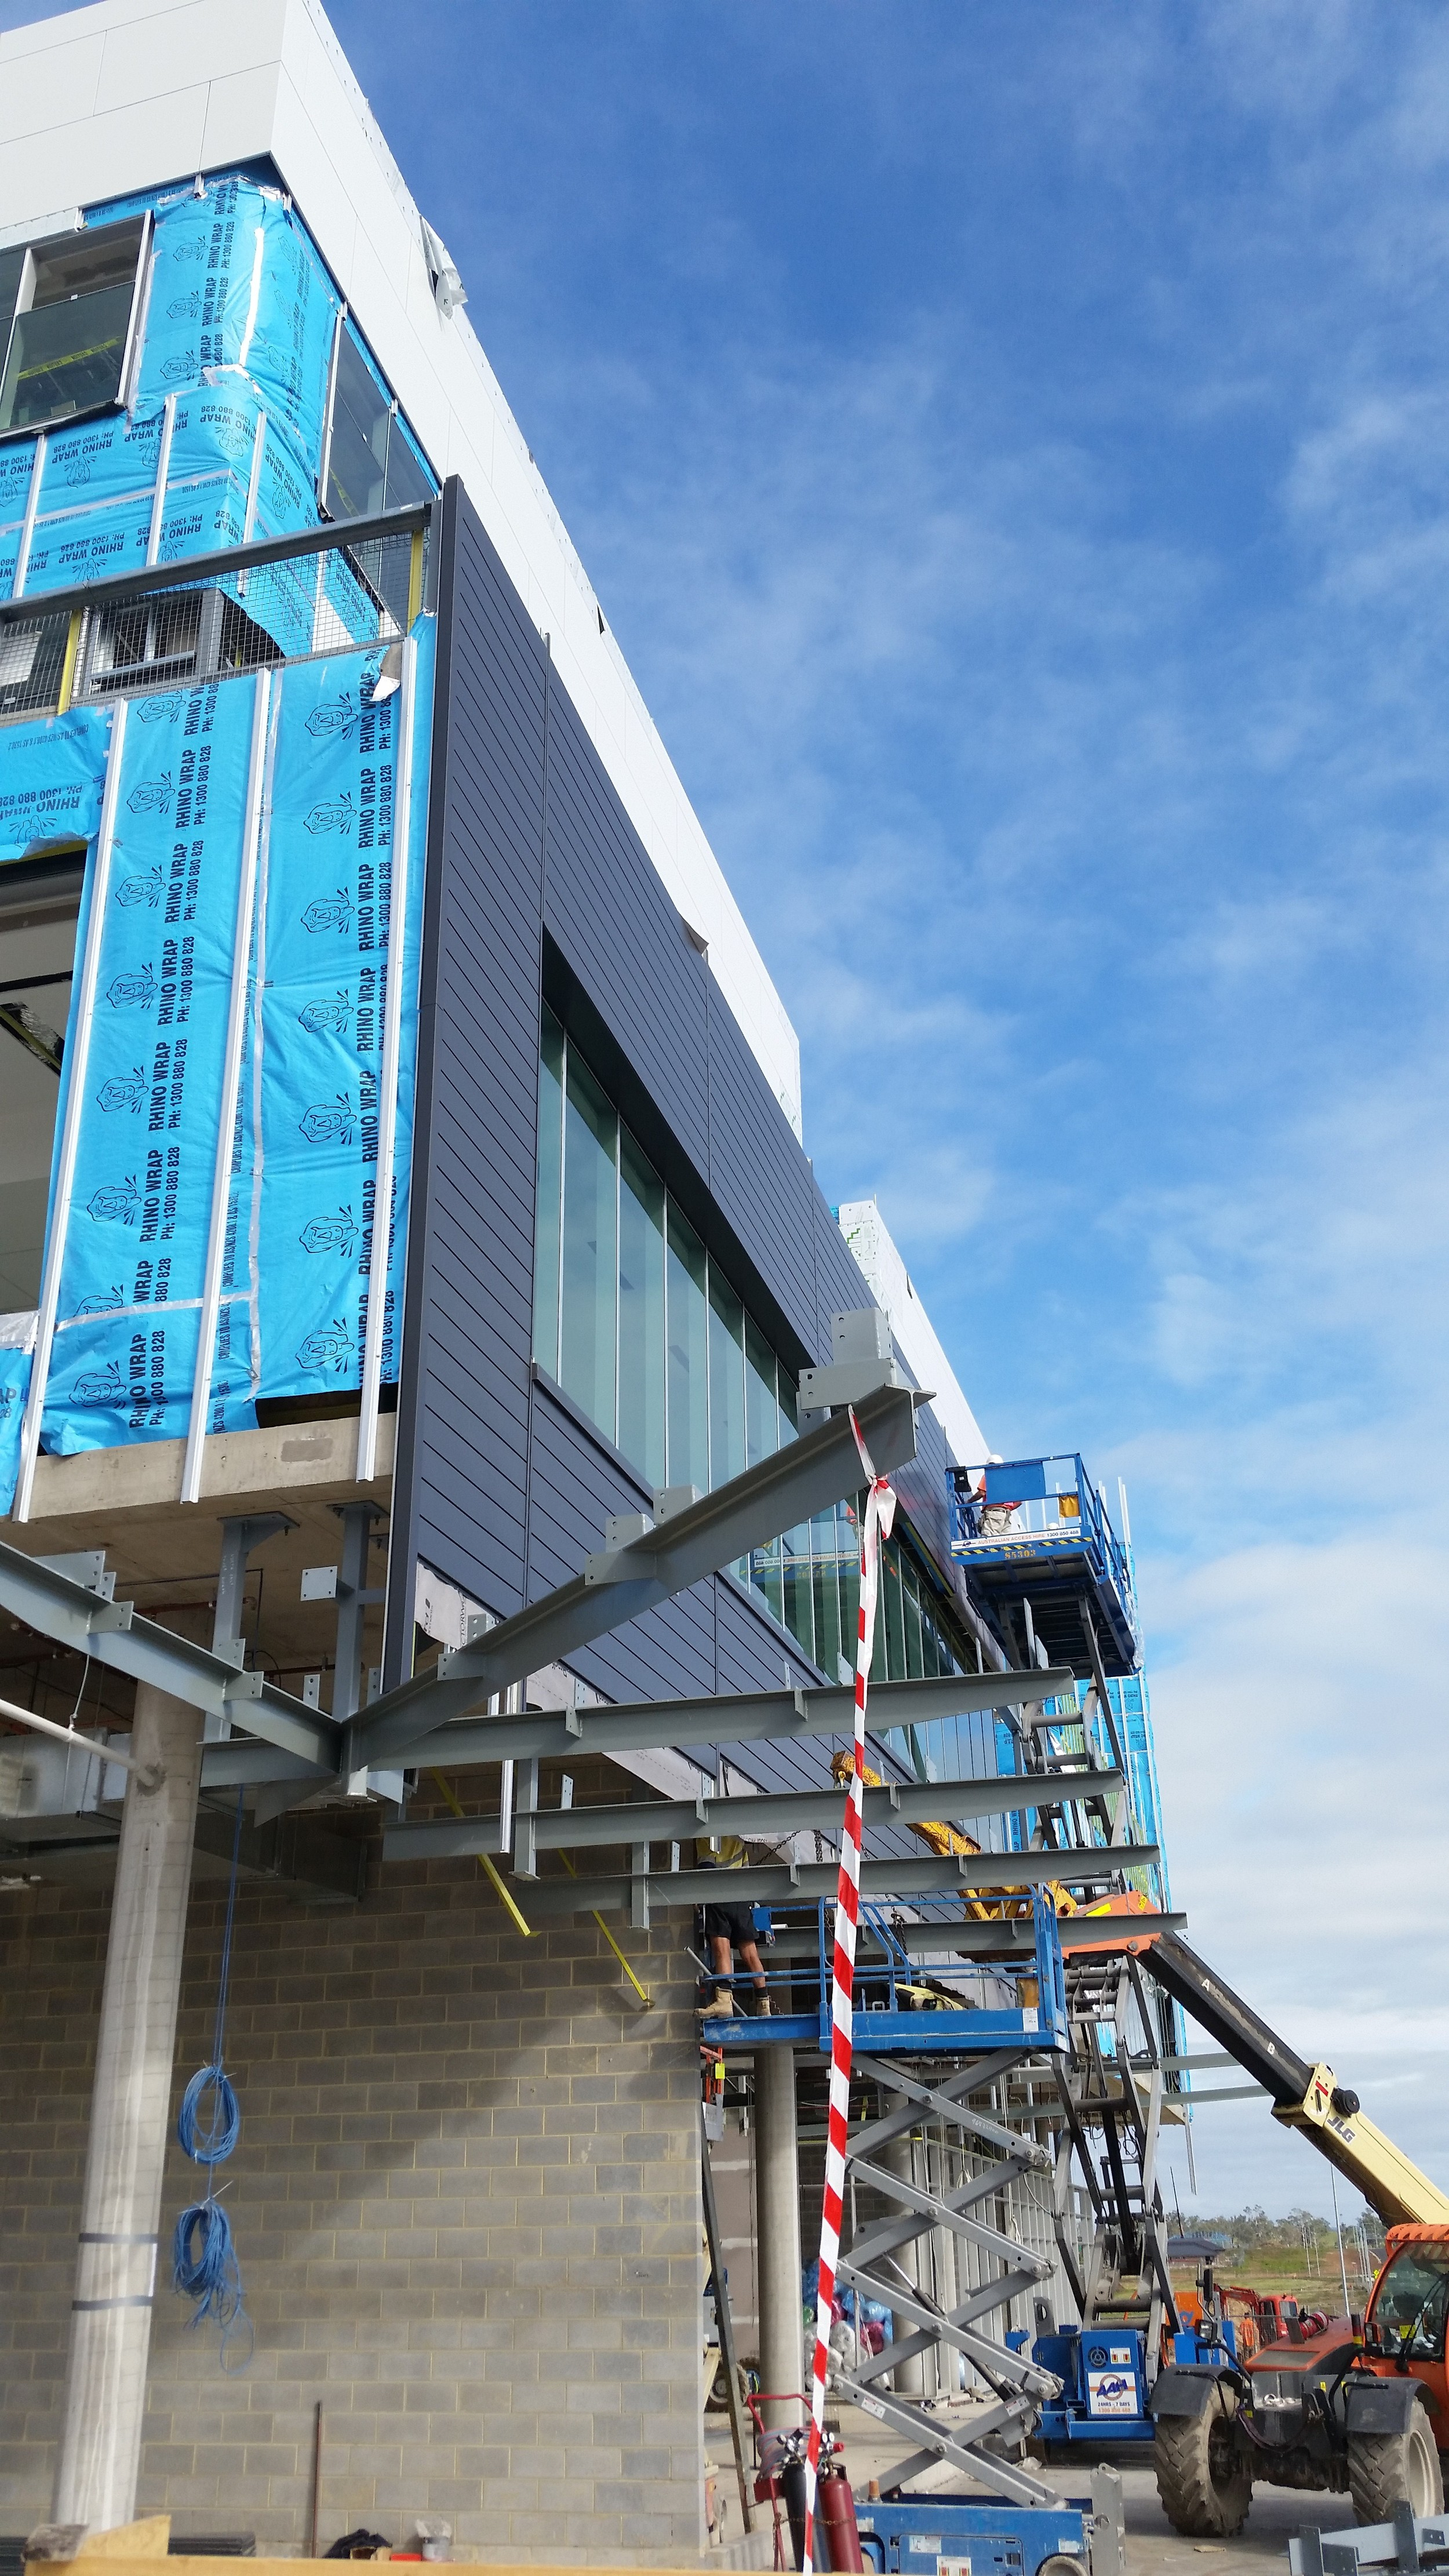 Work in progress - installing the Express Panels on the North Elevation